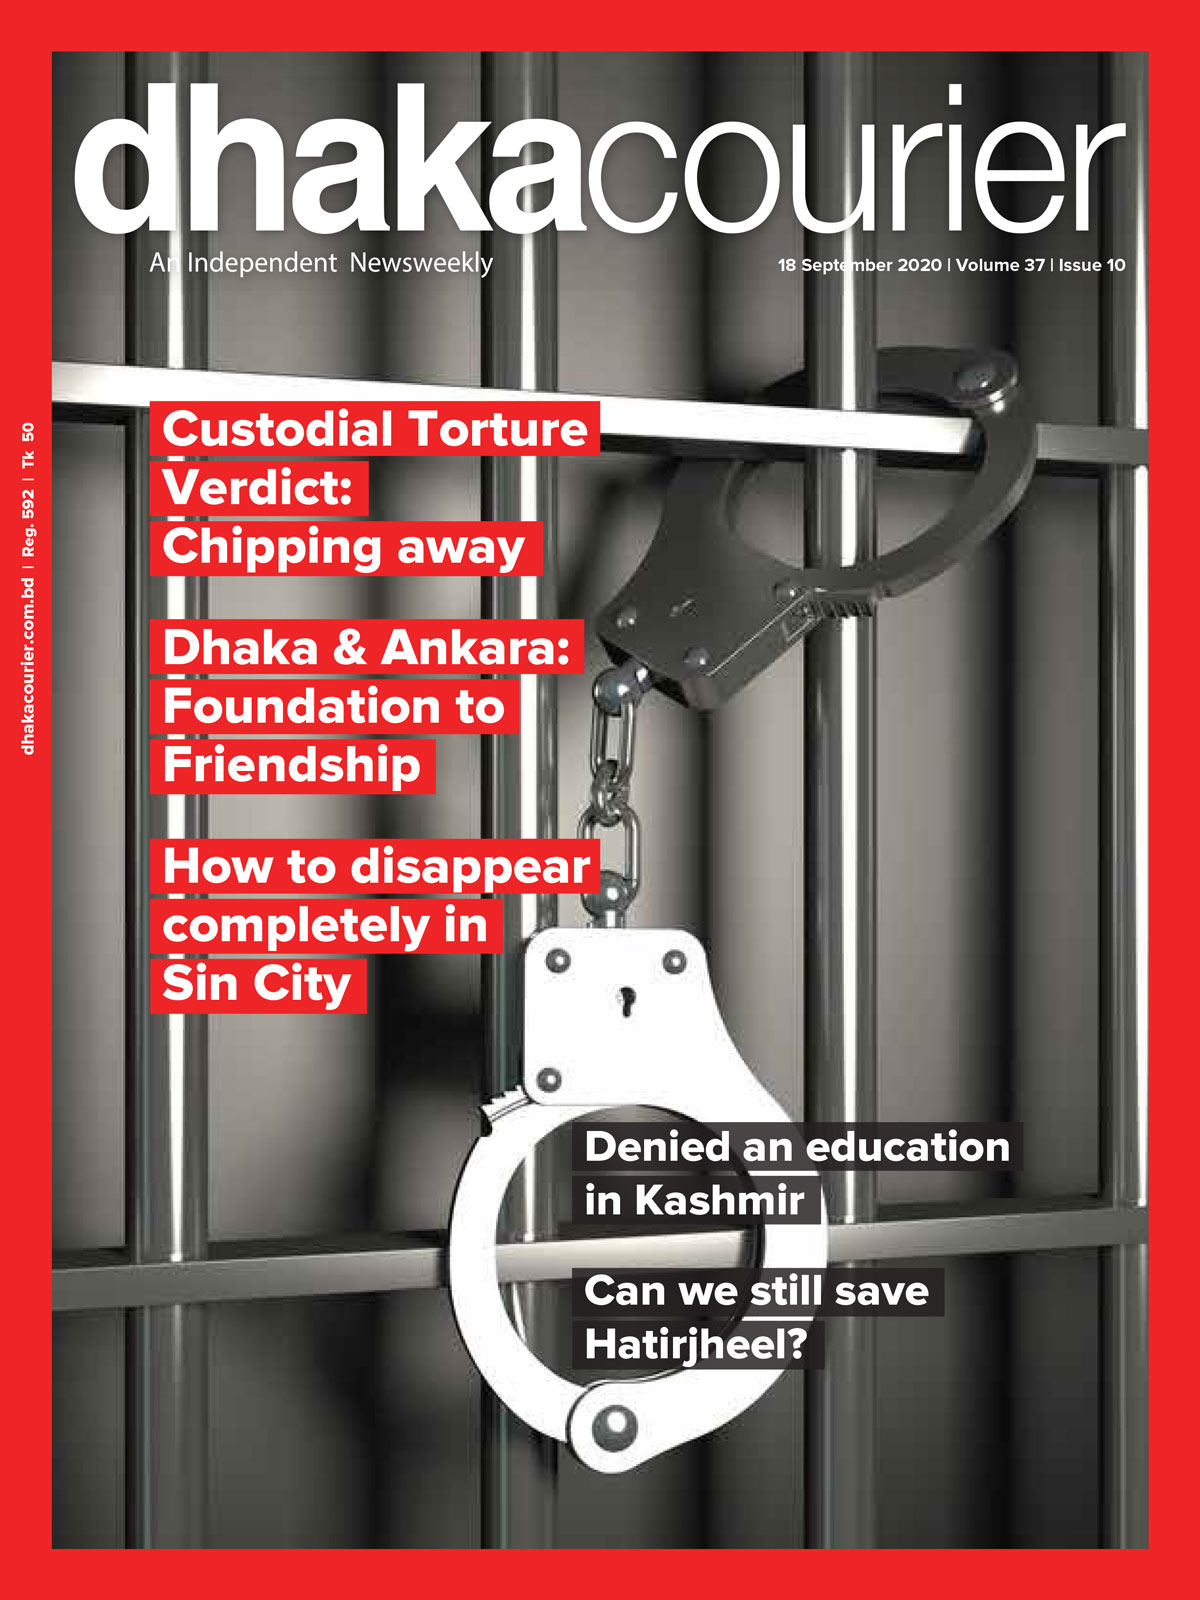 DhakaCourier Vol 37 Issue 10